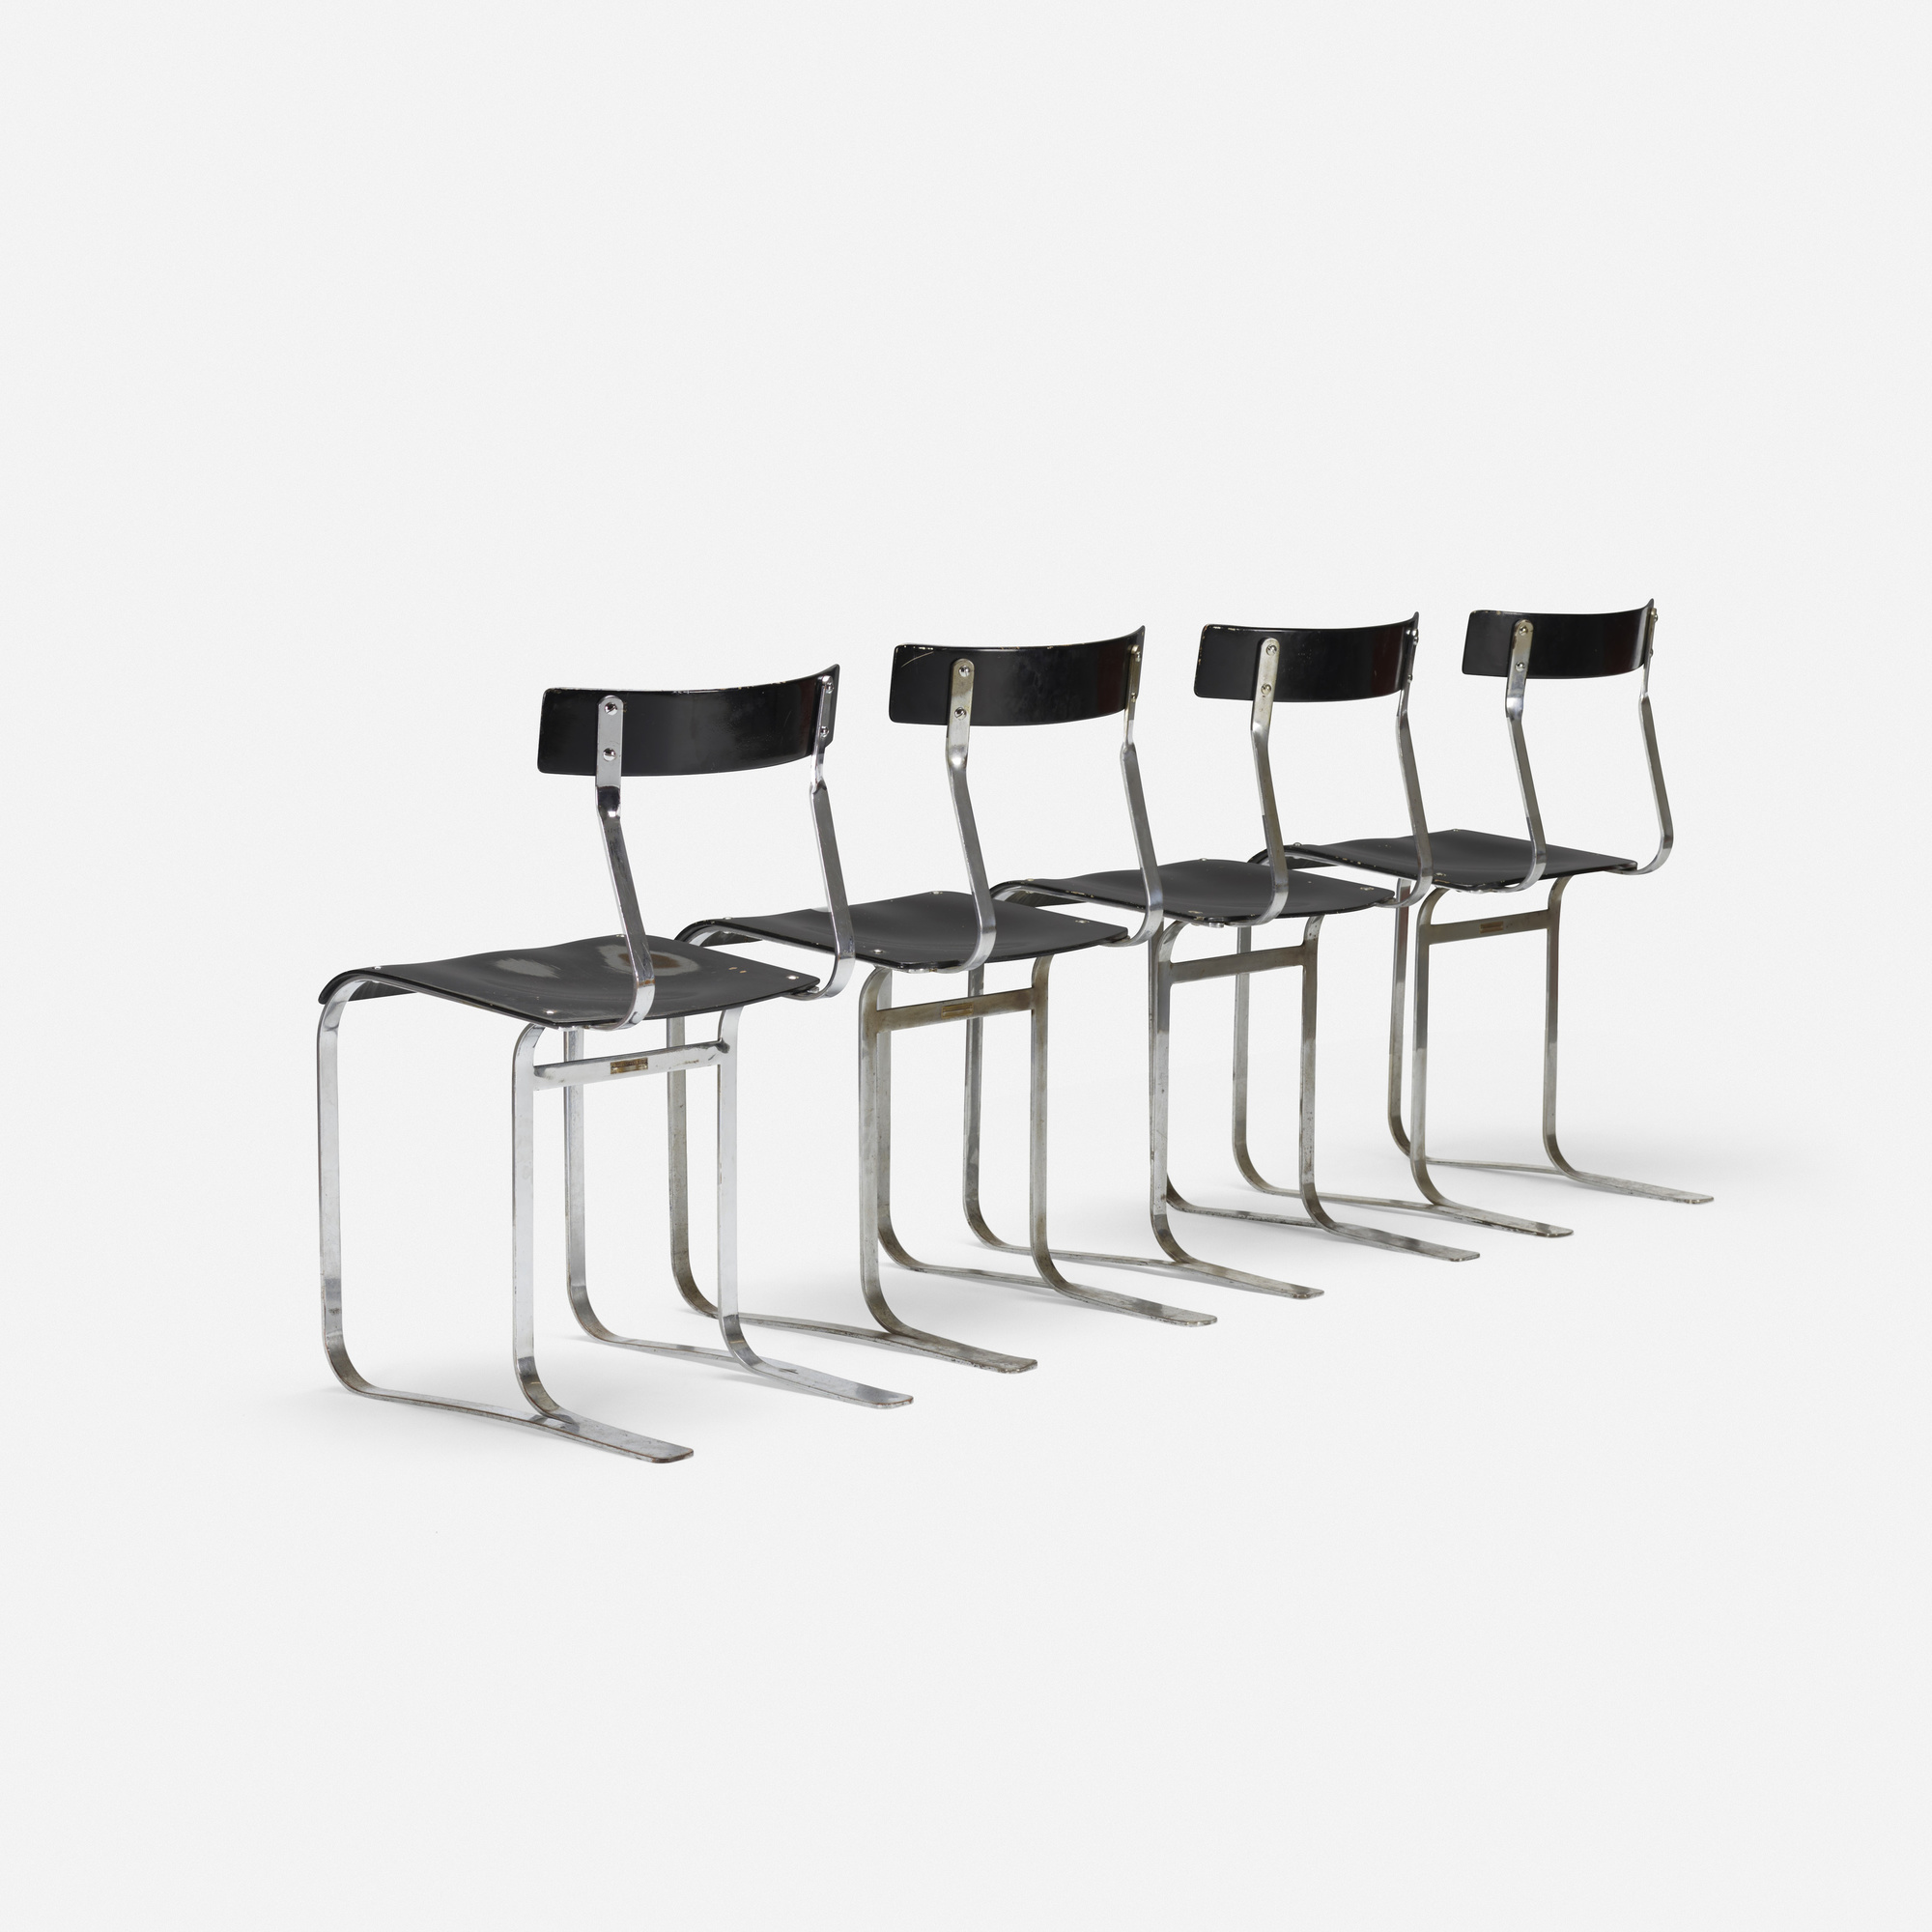 ... 235 Marcel Breuer / chairs model WB301 set of four (2 of 3 & 235: MARCEL BREUER chairs model WB301 set of four u003c Design 22 ...